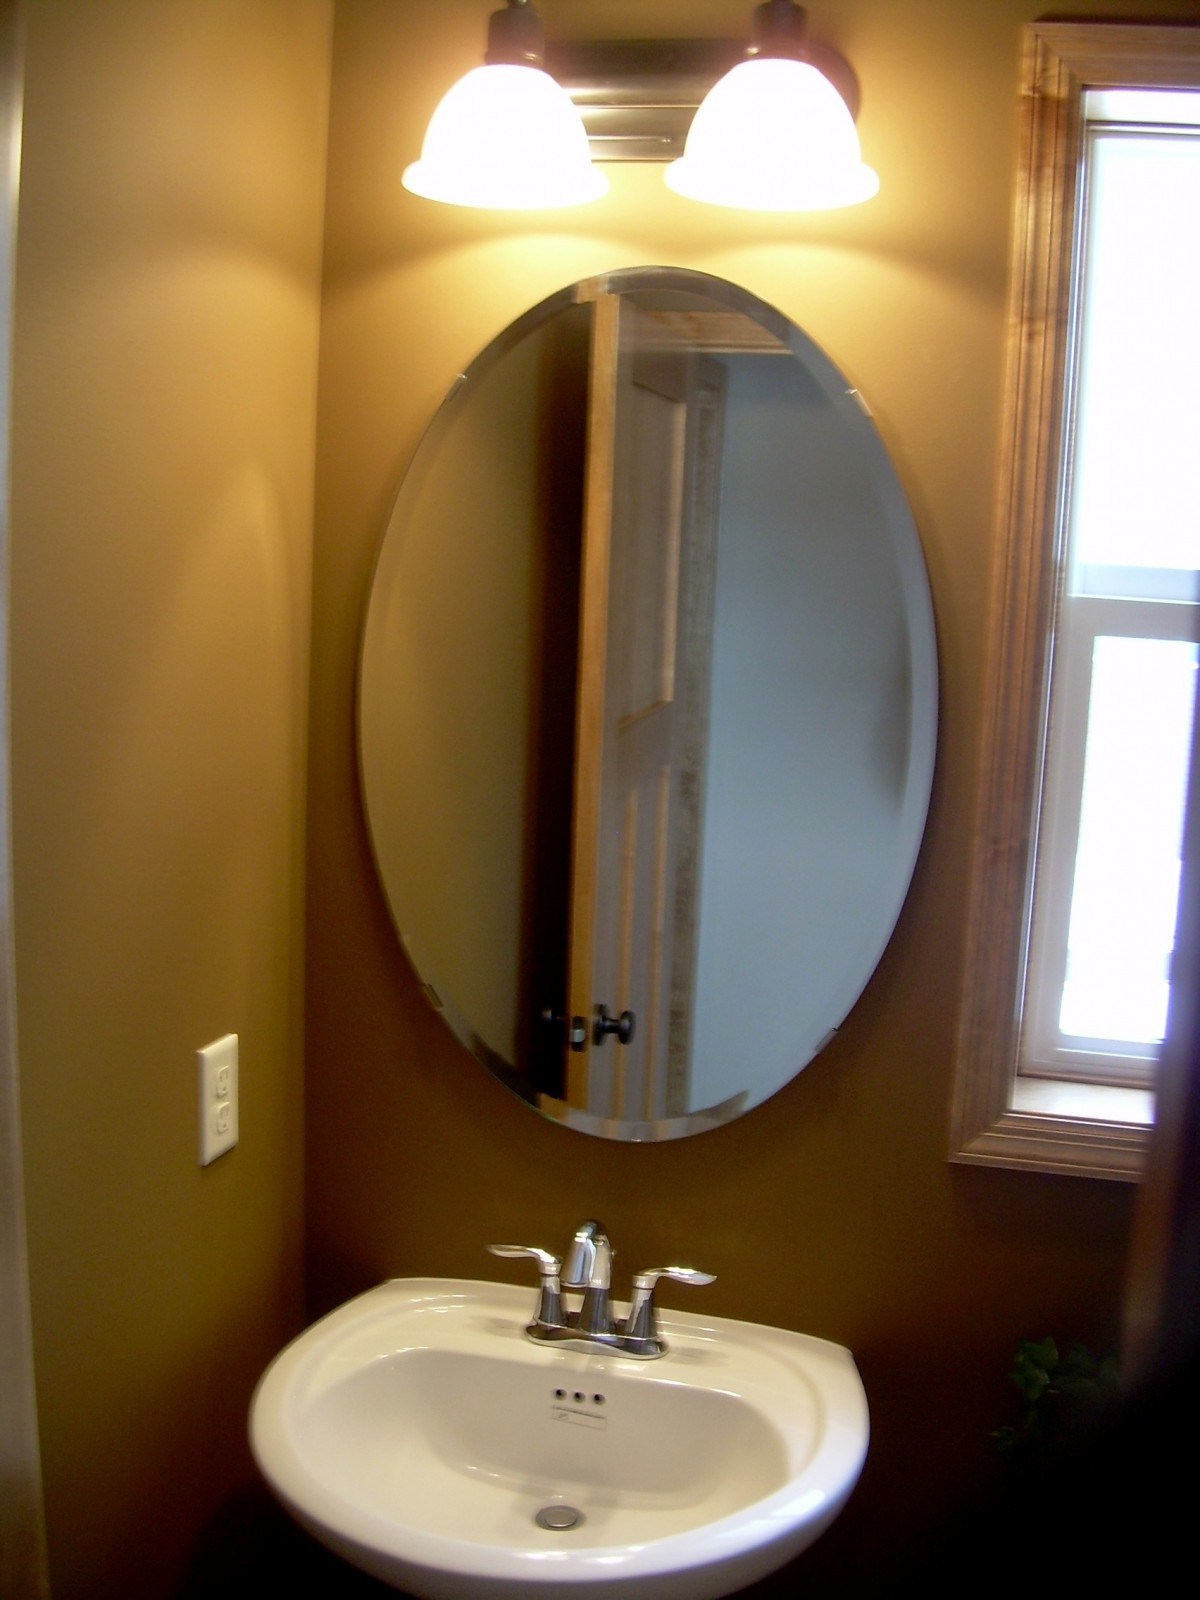 Wallingford Large Frameless Wall Mirrors Intended For Newest Hang Mirrors Wall Rectangular Home Doors Mirror De Wallingford (View 10 of 20)